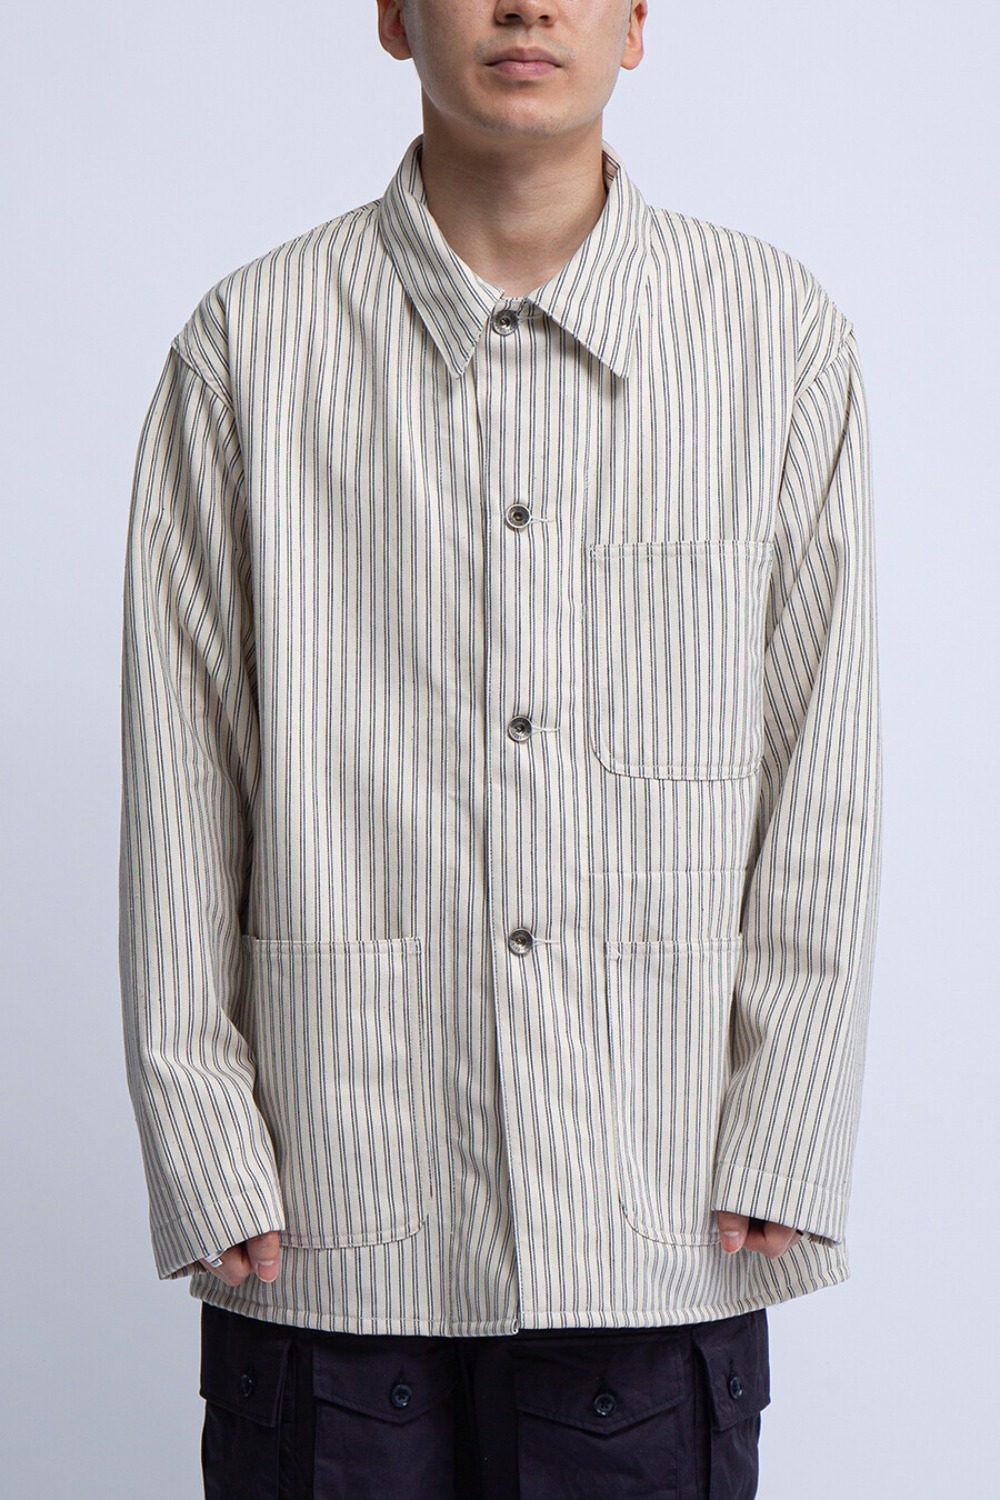 UTILITY JACKET NATURAL NAVY UNIFORM STRIPE